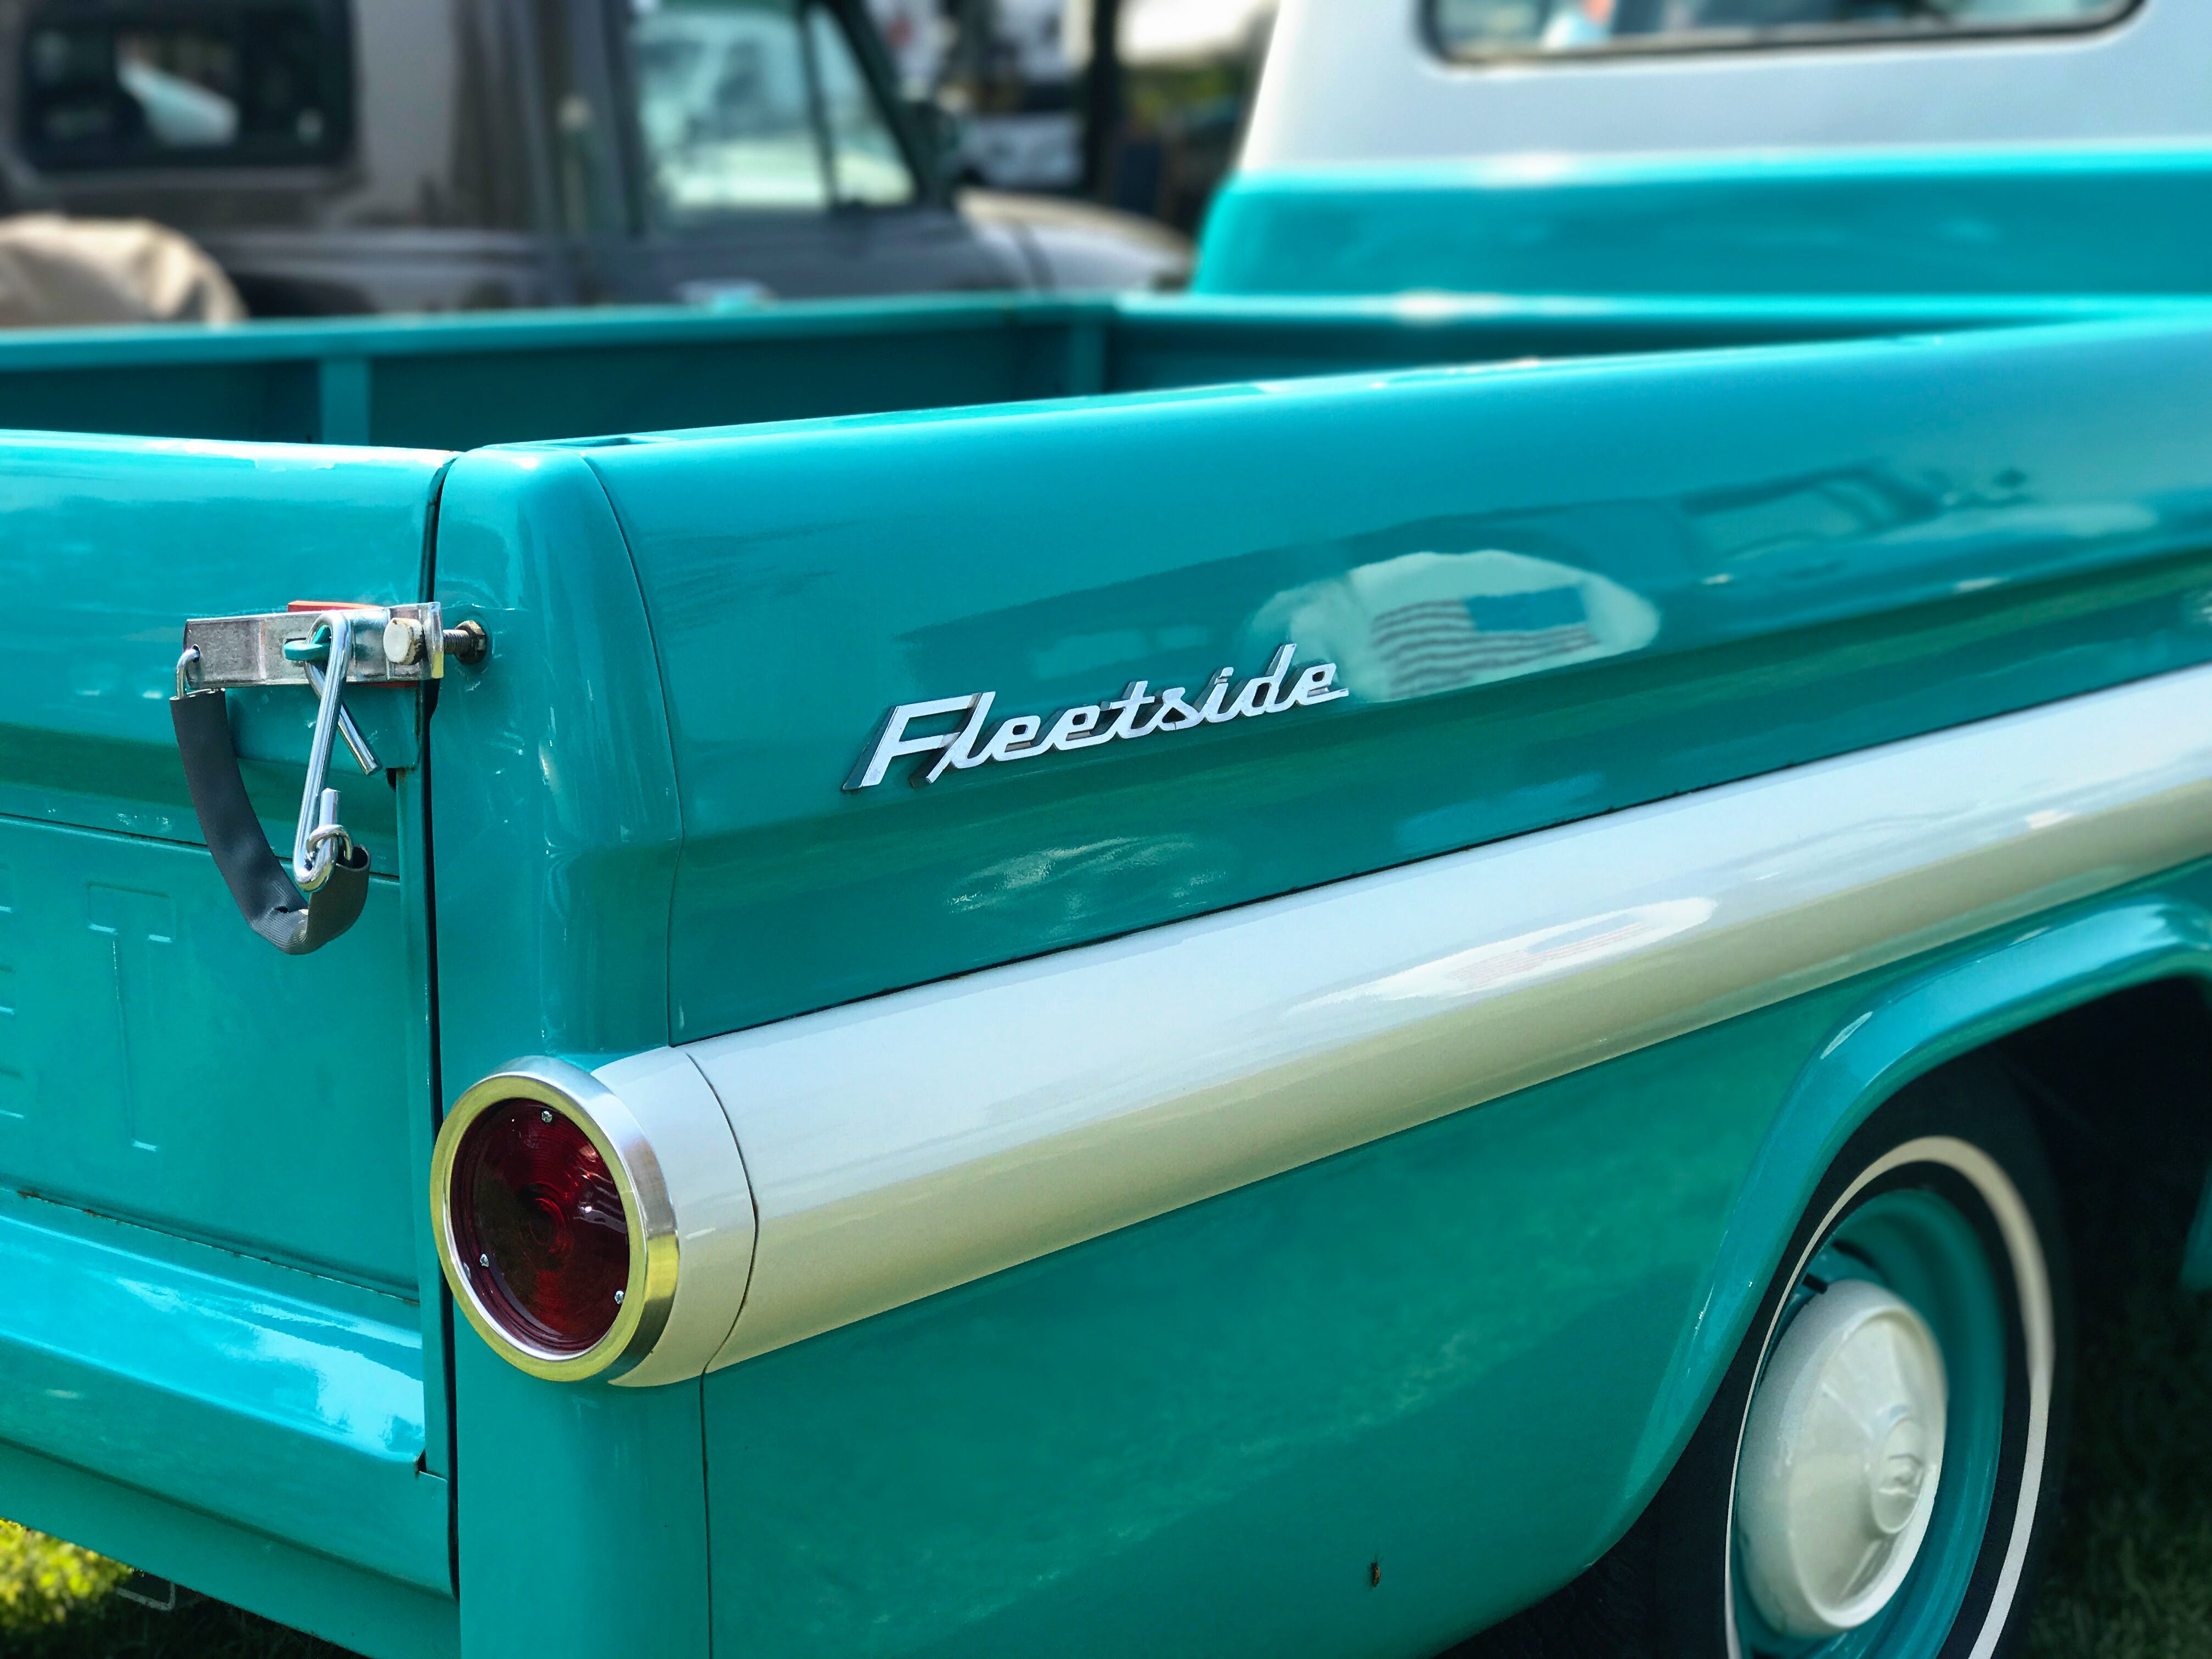 Teal Chevrolet Pickup Truck